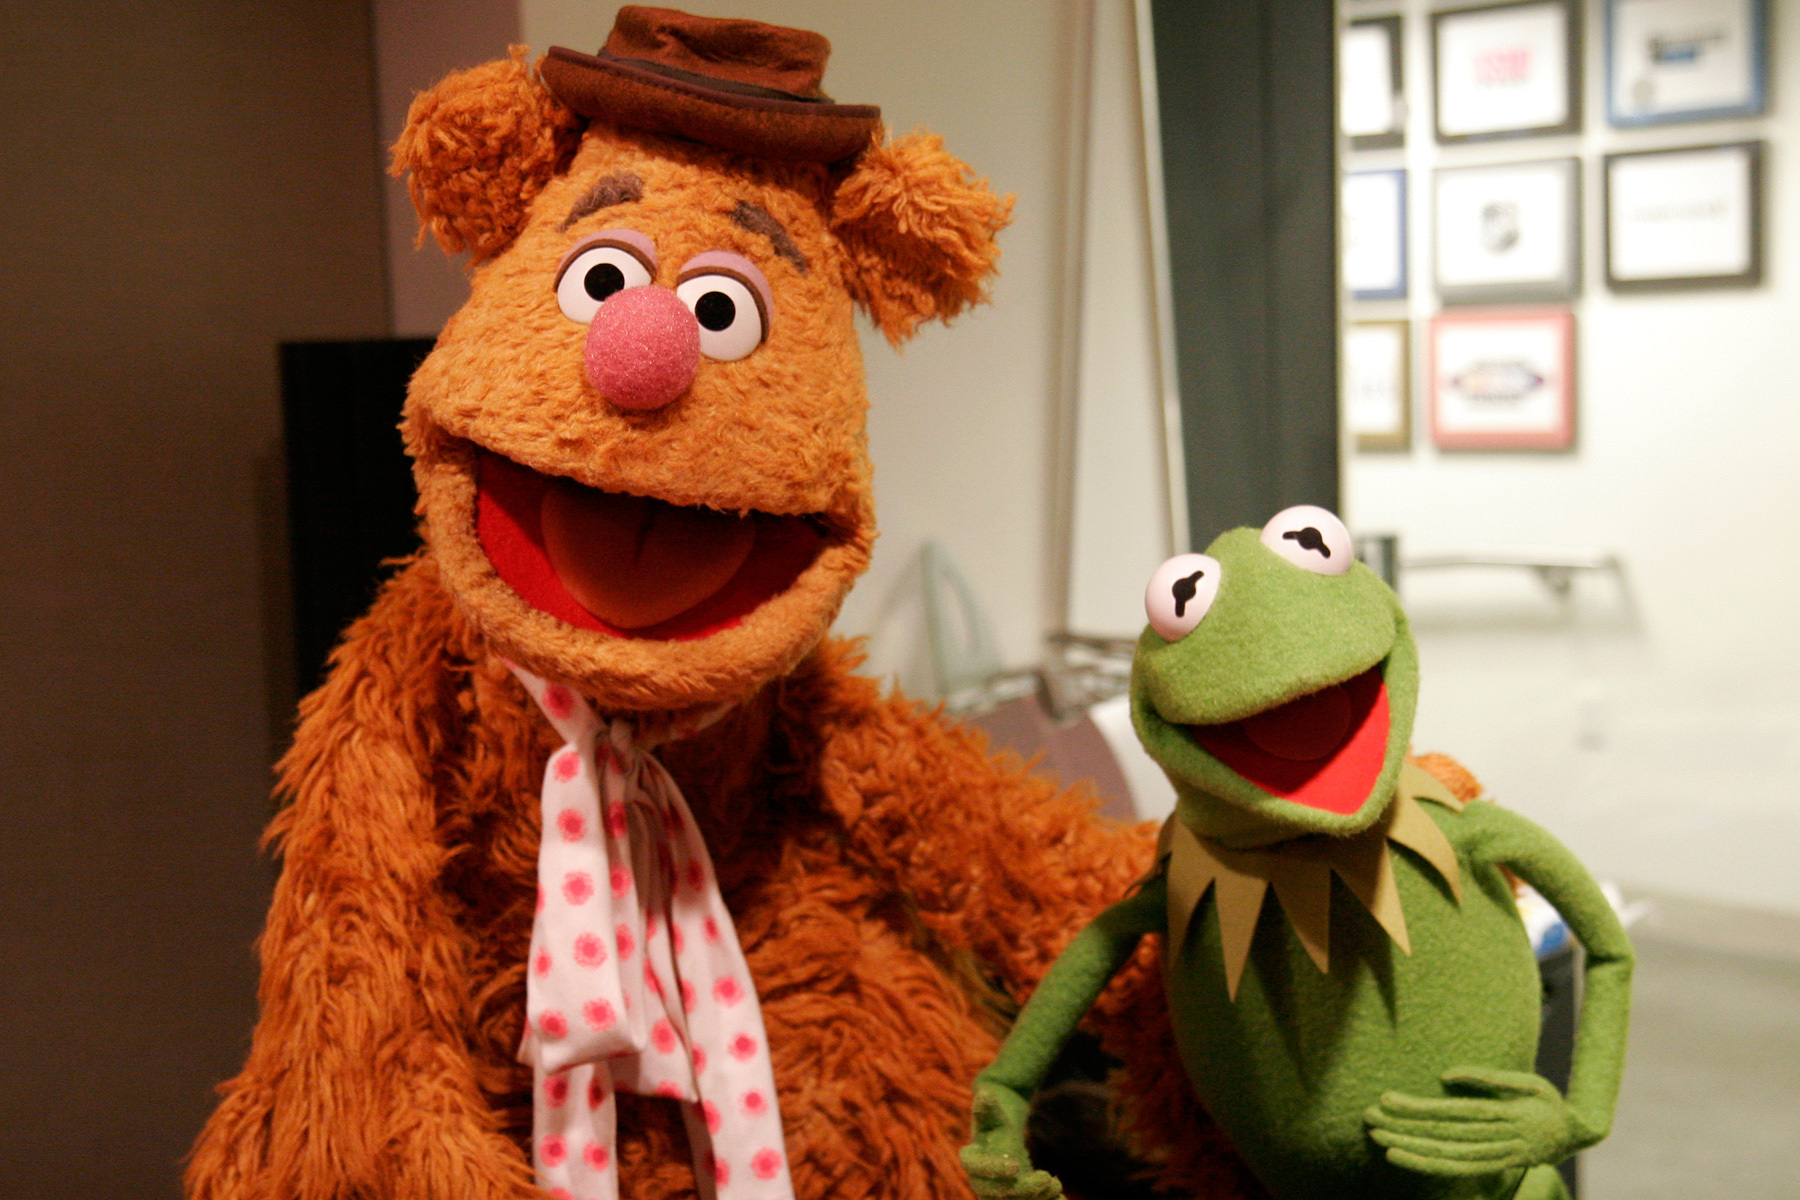 15 Things You Didn't Know About the Muppets | Fandango